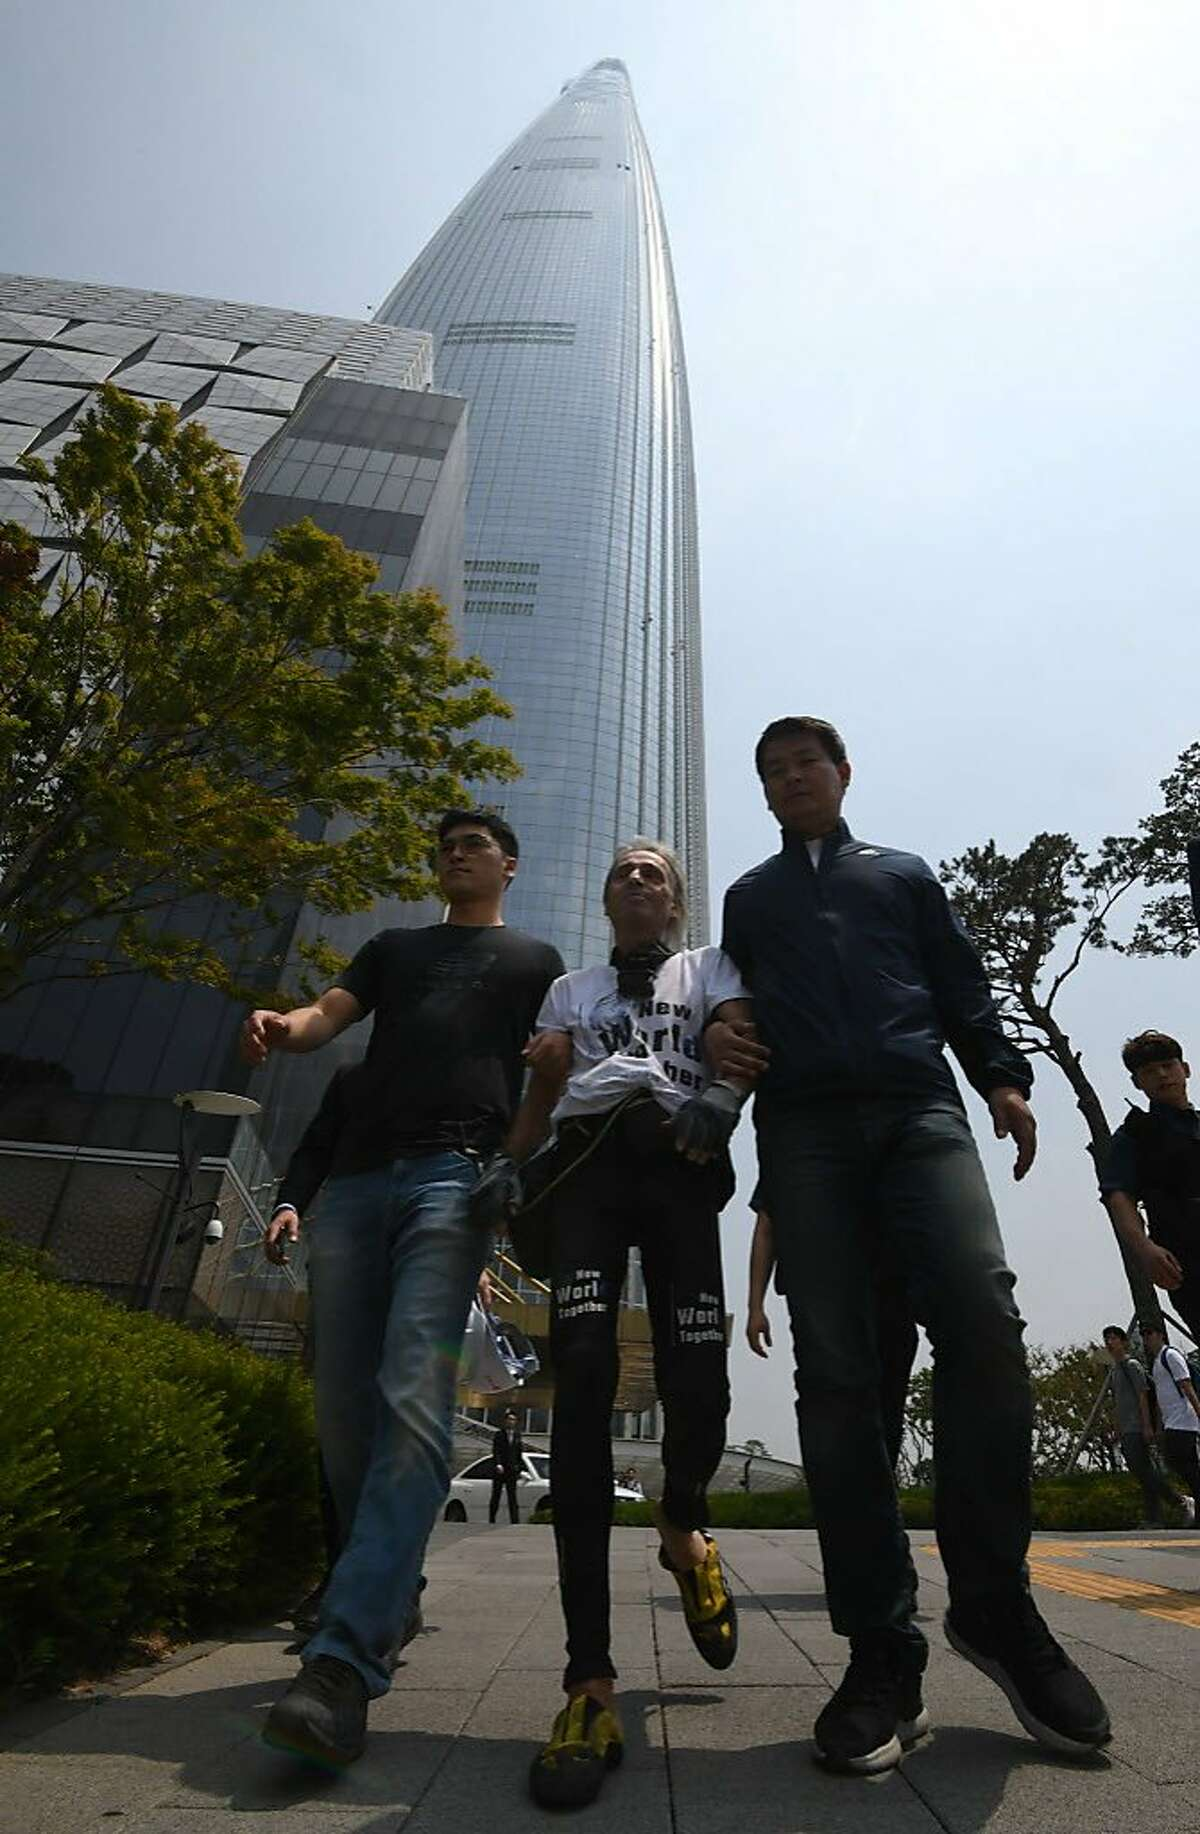 French urban climber Alain Robert (center) is arrested after being intercepted during his climb of the Lotte World Tower in Seoul on June 6, 2018. French